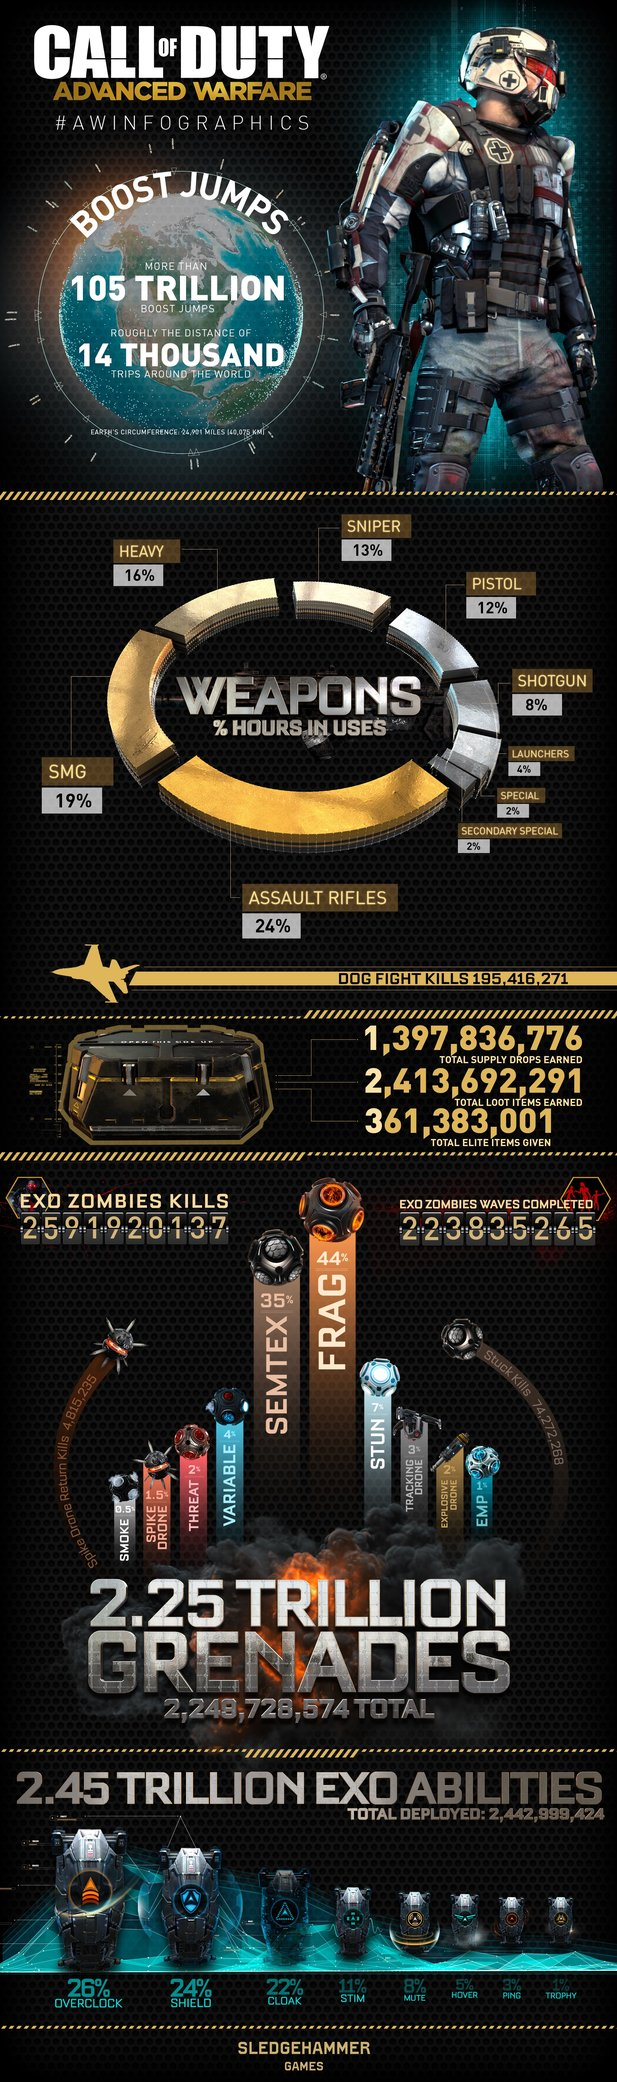 Interessante Statistiken von Call of Duty: Advanced Warfare.